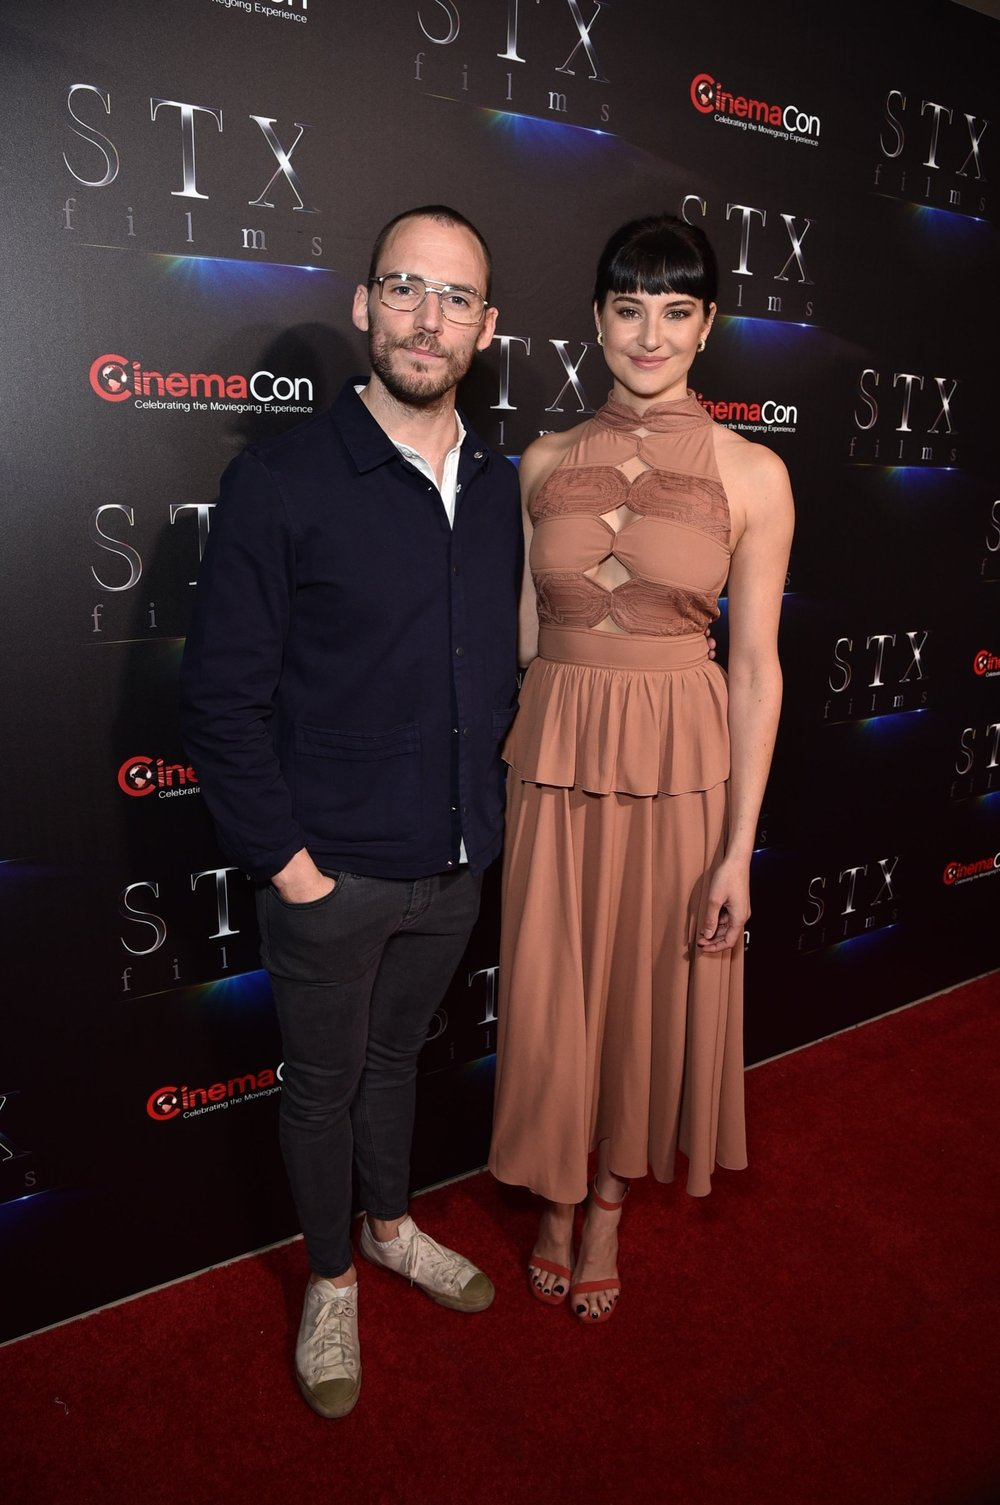 Sam Claflin and Shailene Woodley attend STXfilms' 2018 CinemaCon Presentation at The Colosseum of Caesars Palace, Las Vegas, NV Tuesday, April 24, 2018.